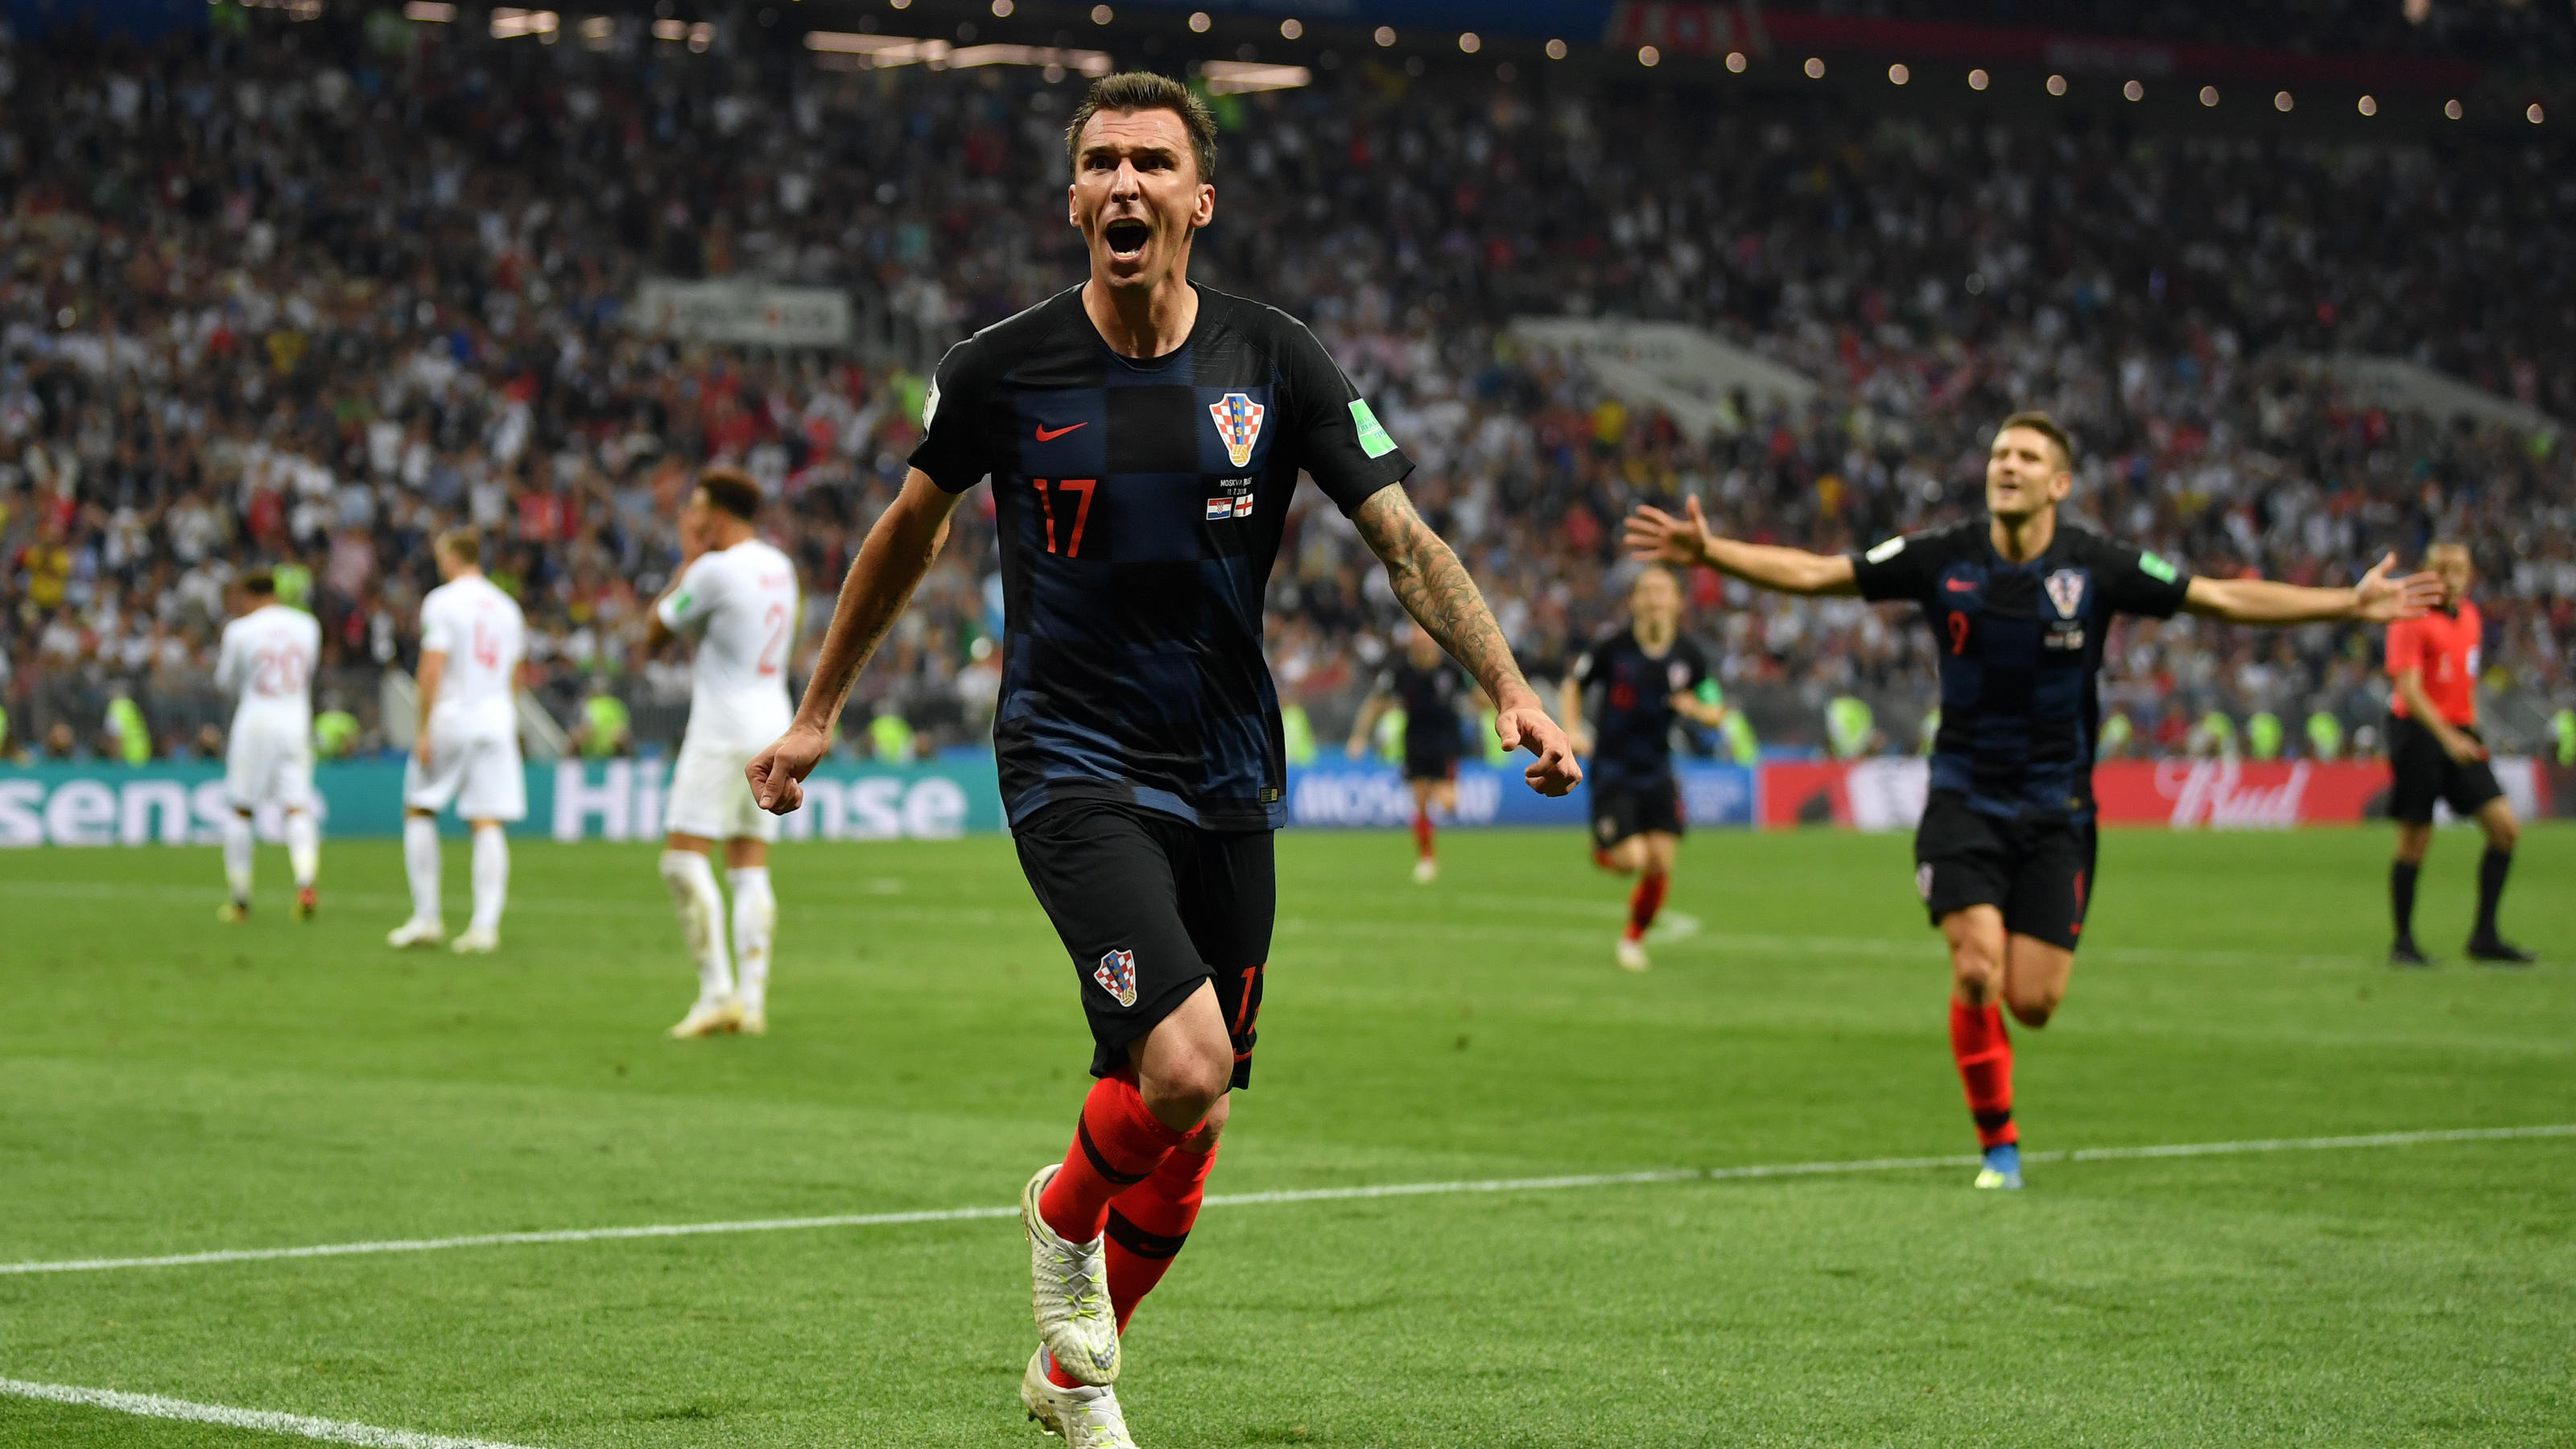 MOSCOW, RUSSIA - JULY 11:  Mario Mandzukic of Croatia celebrates after scoring his team's second goal during the 2018 FIFA World Cup Russia Semi Final match between England and Croatia at Luzhniki Stadium on July 11, 2018 in Moscow, Russia.  (Photo b